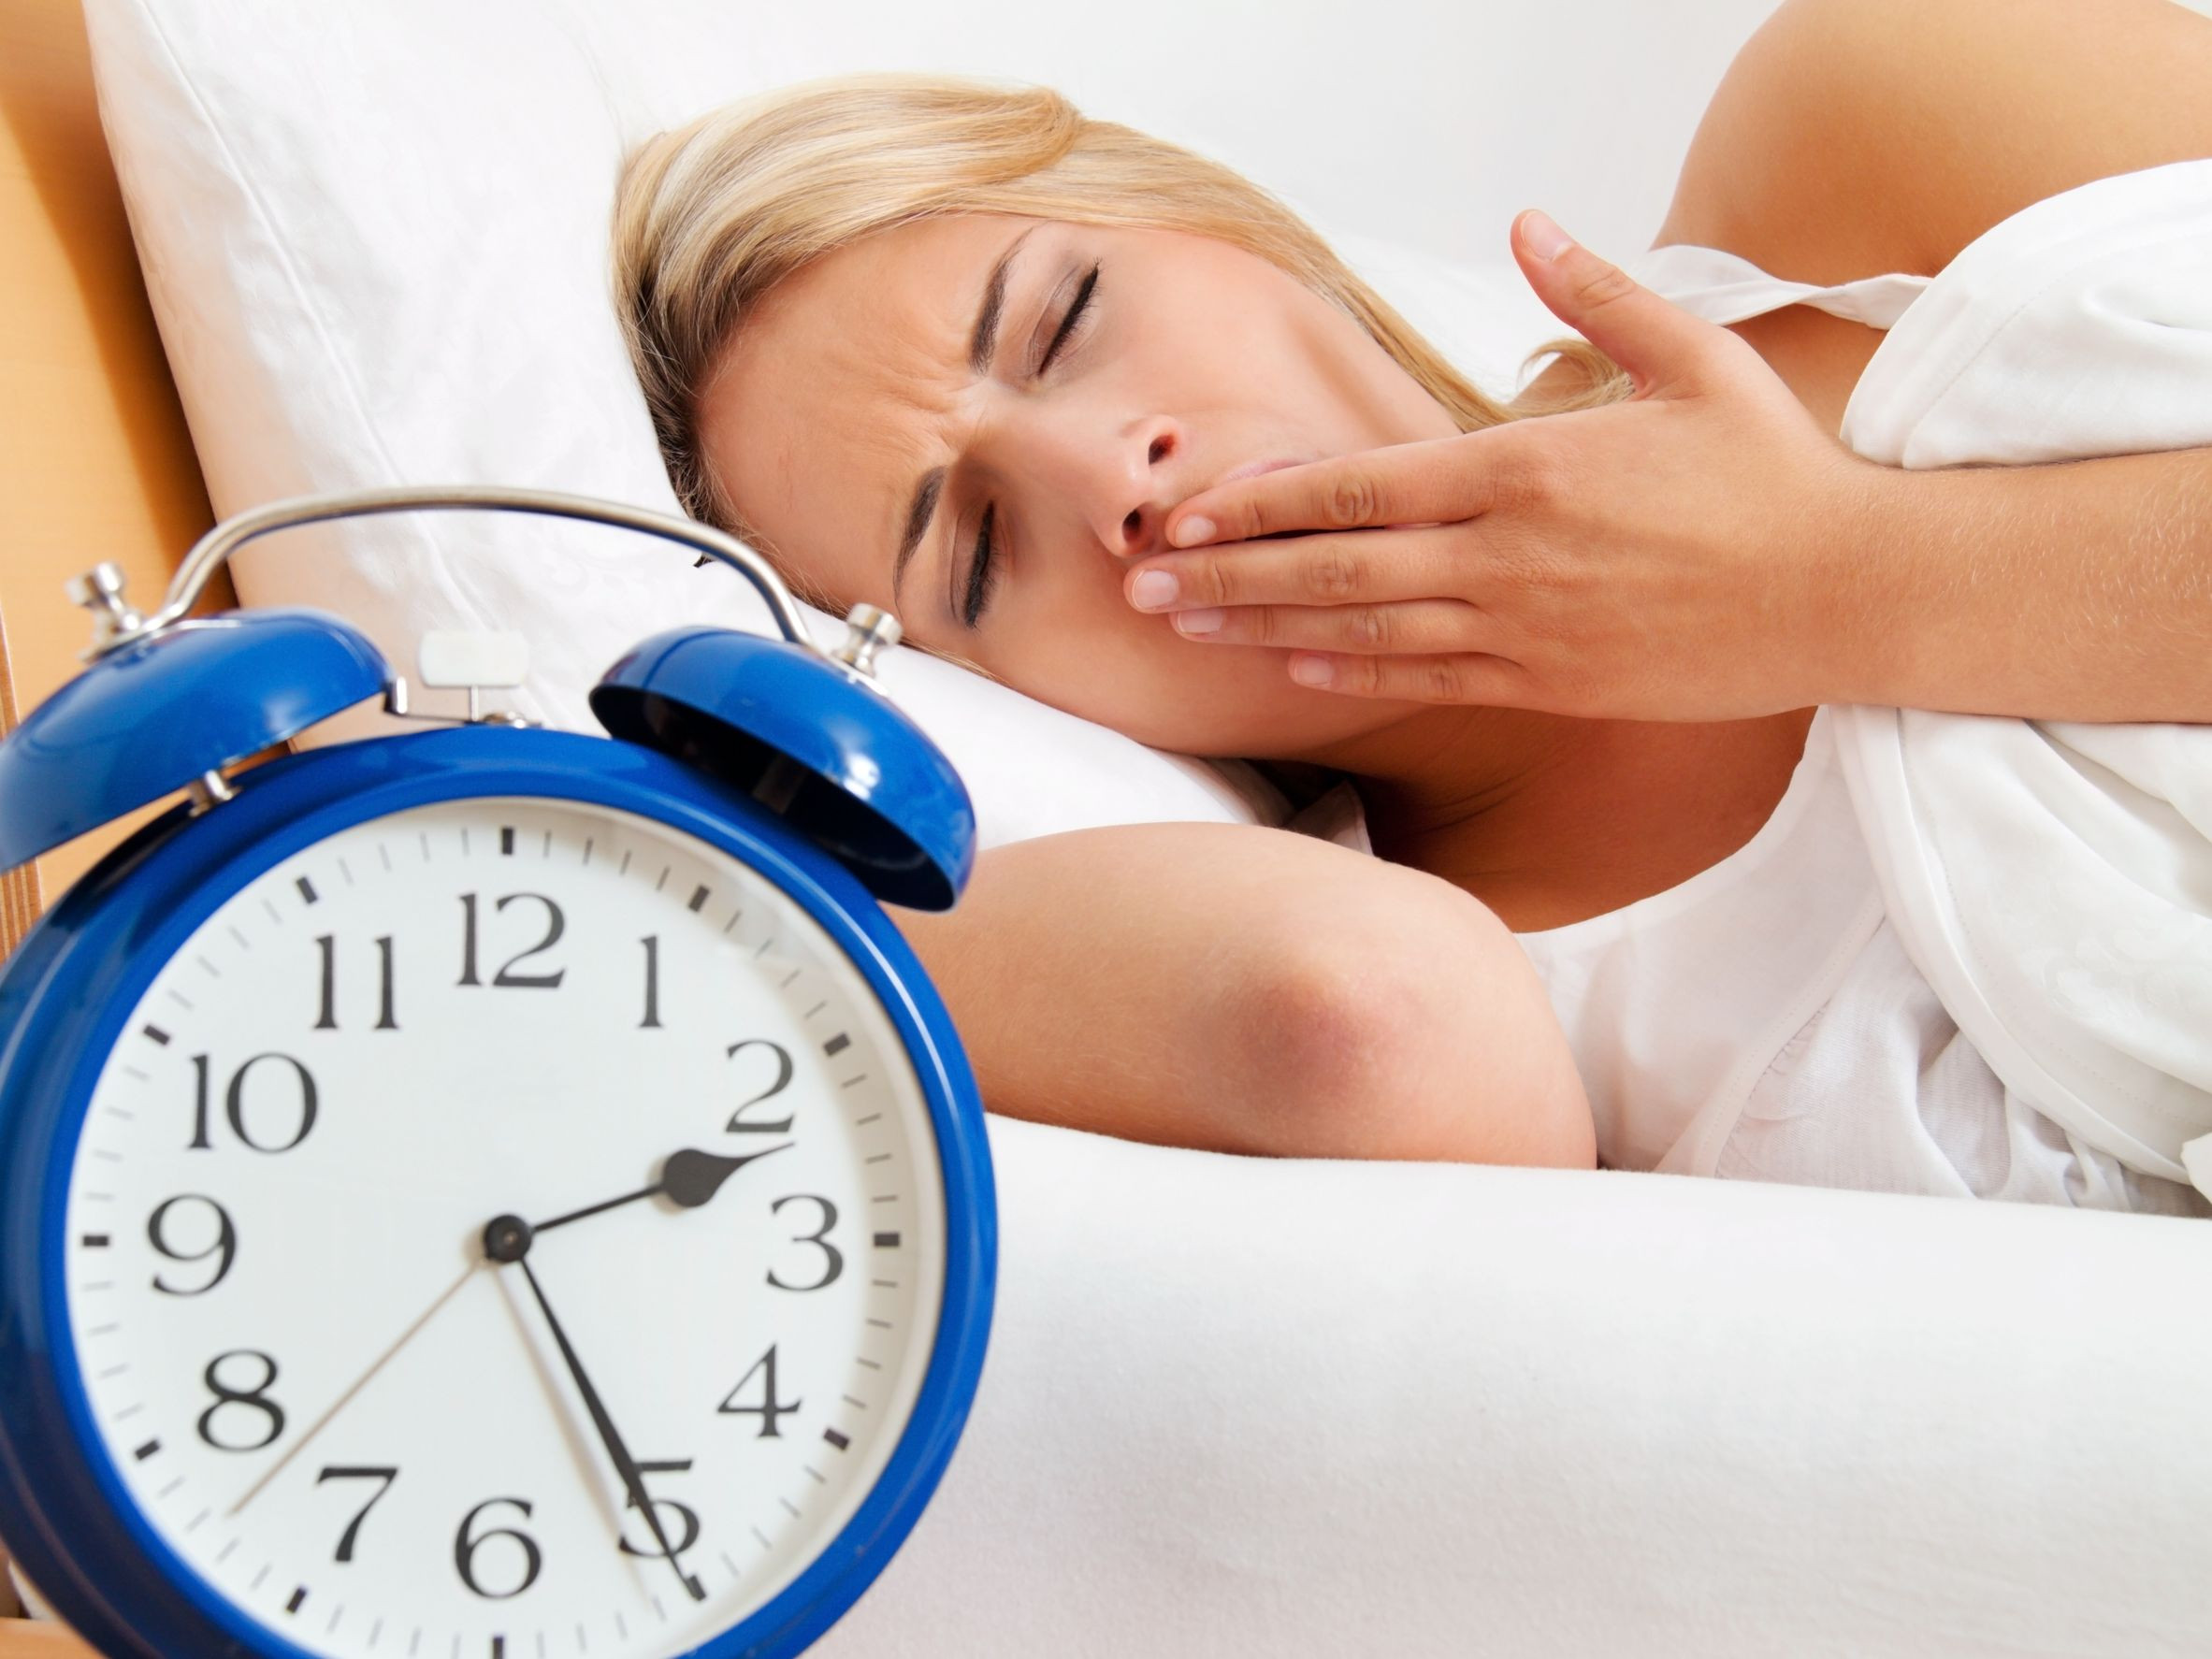 5 Essential Food To Fight Insomnia